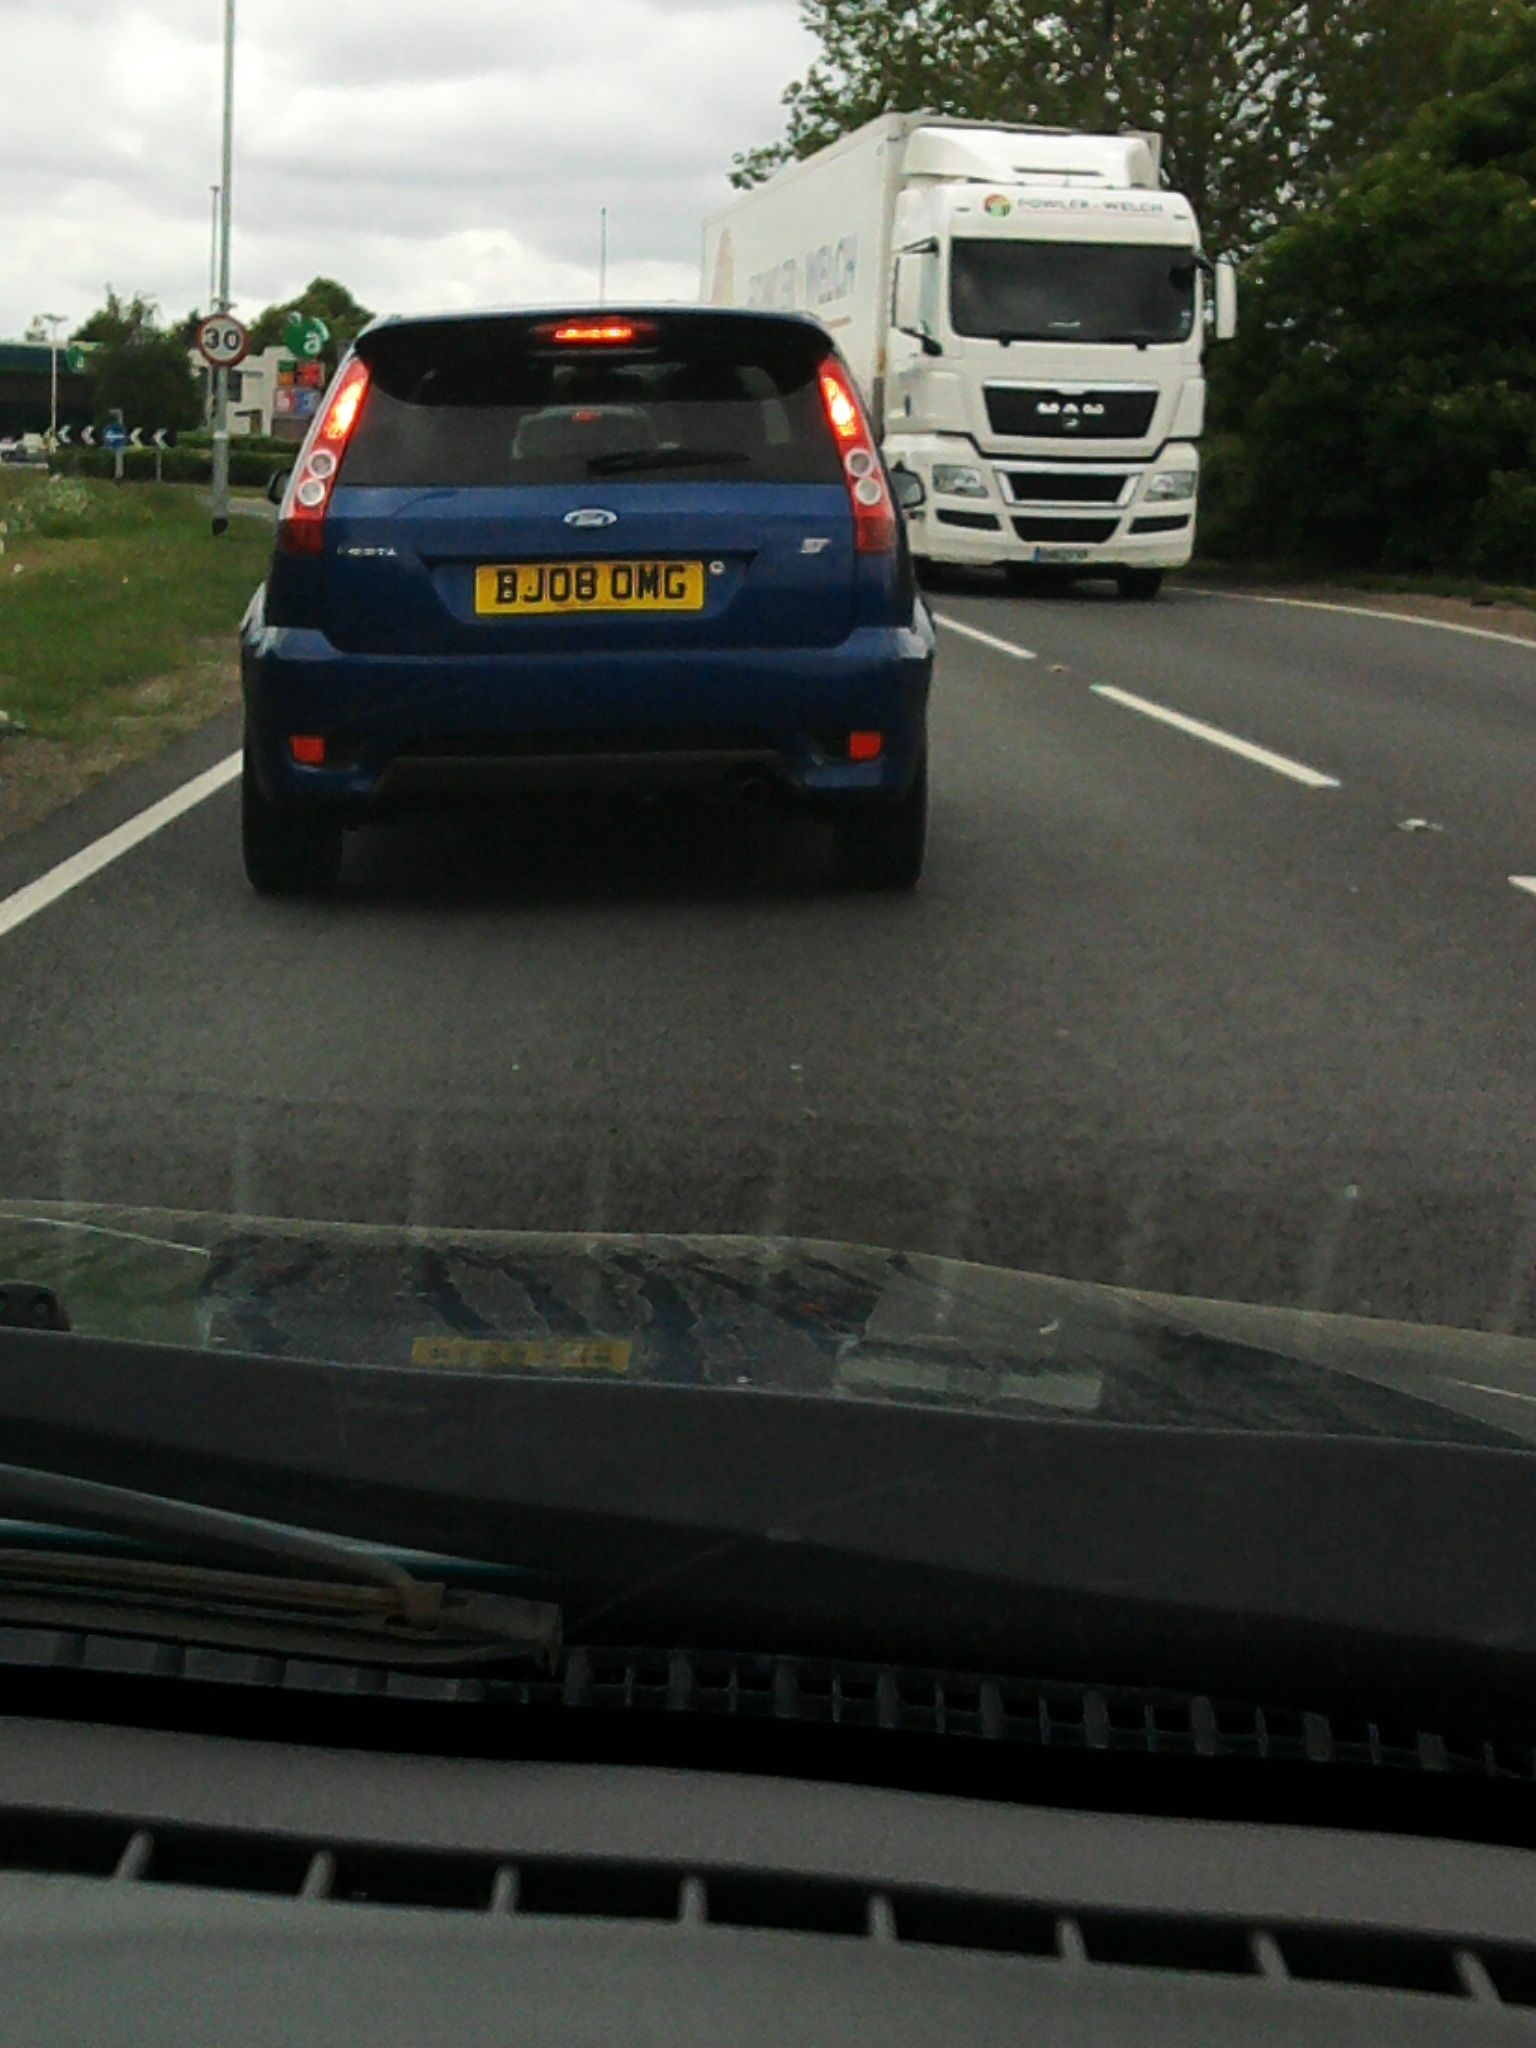 Followed This Car Home One Day And Had To Share His Personalised